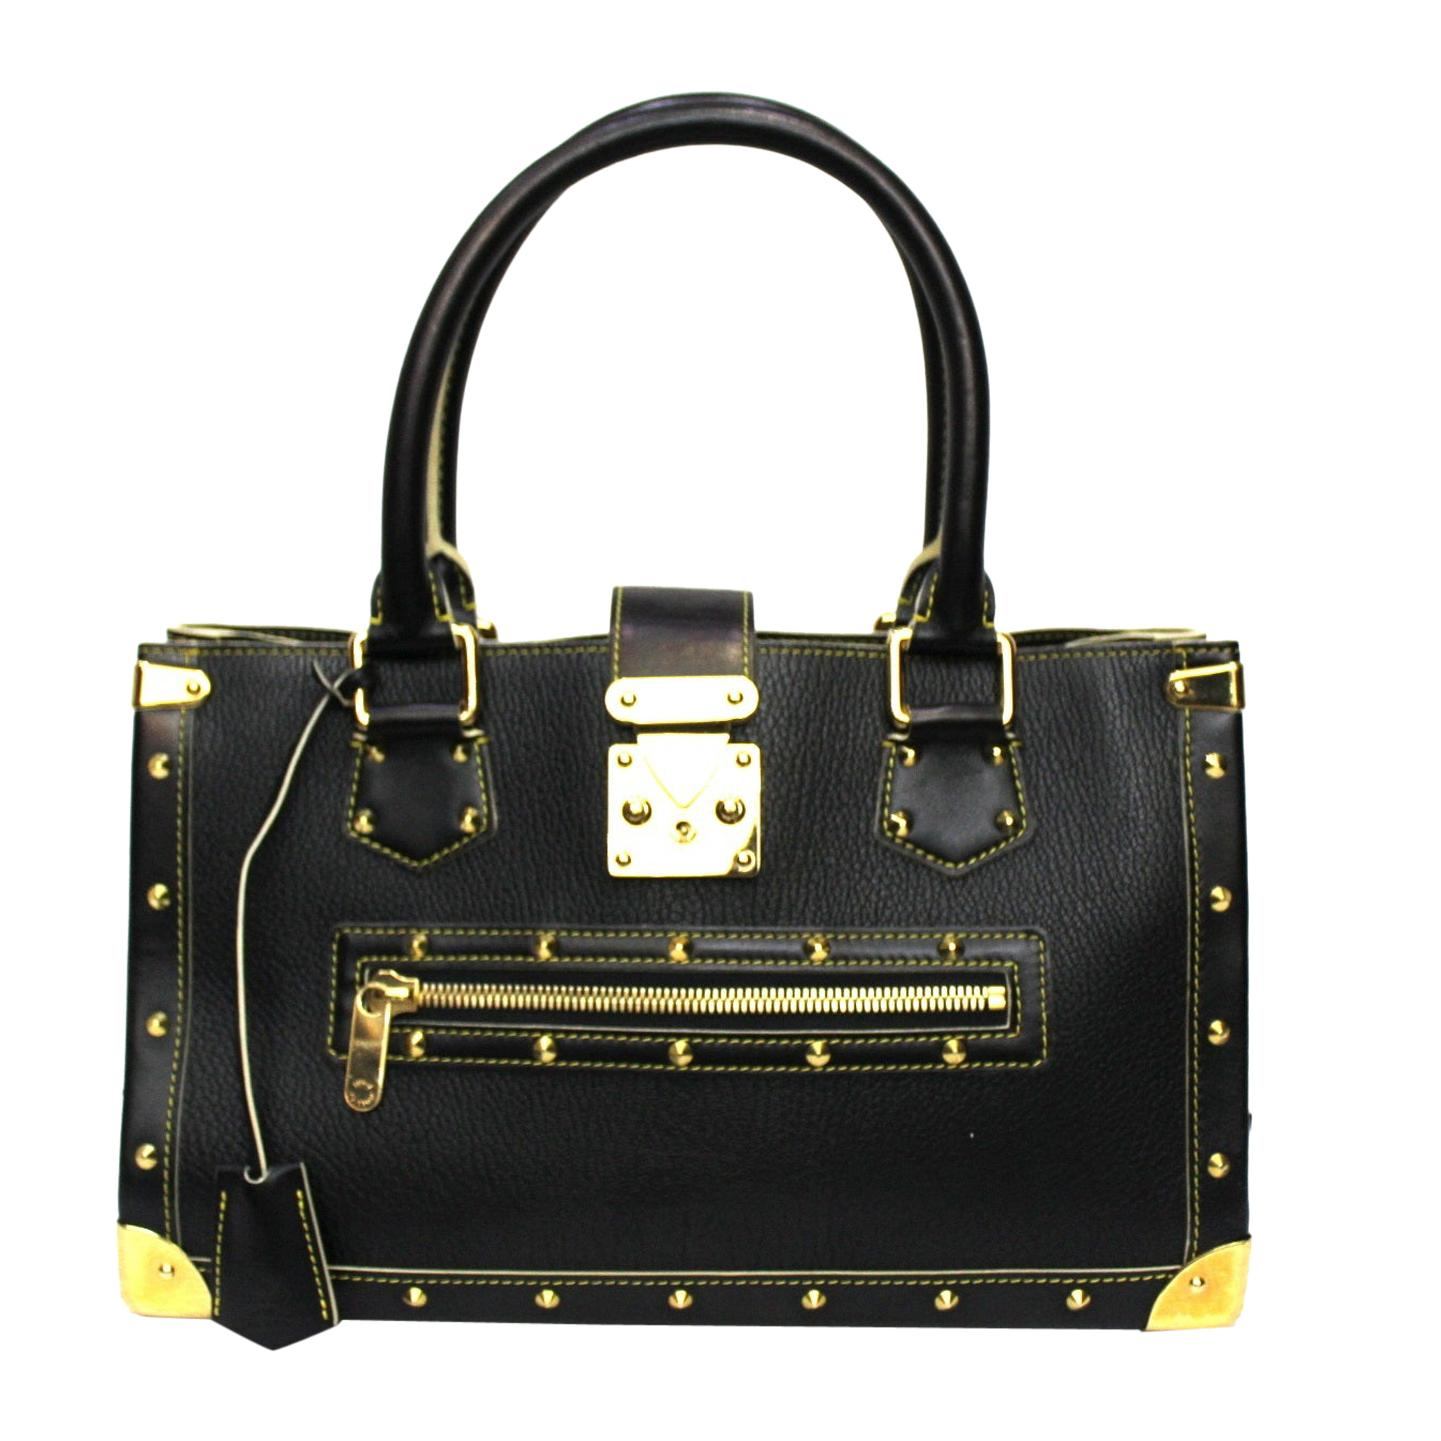 Louis Vuitton Black Leather Suhali le Fabuleaux Bag